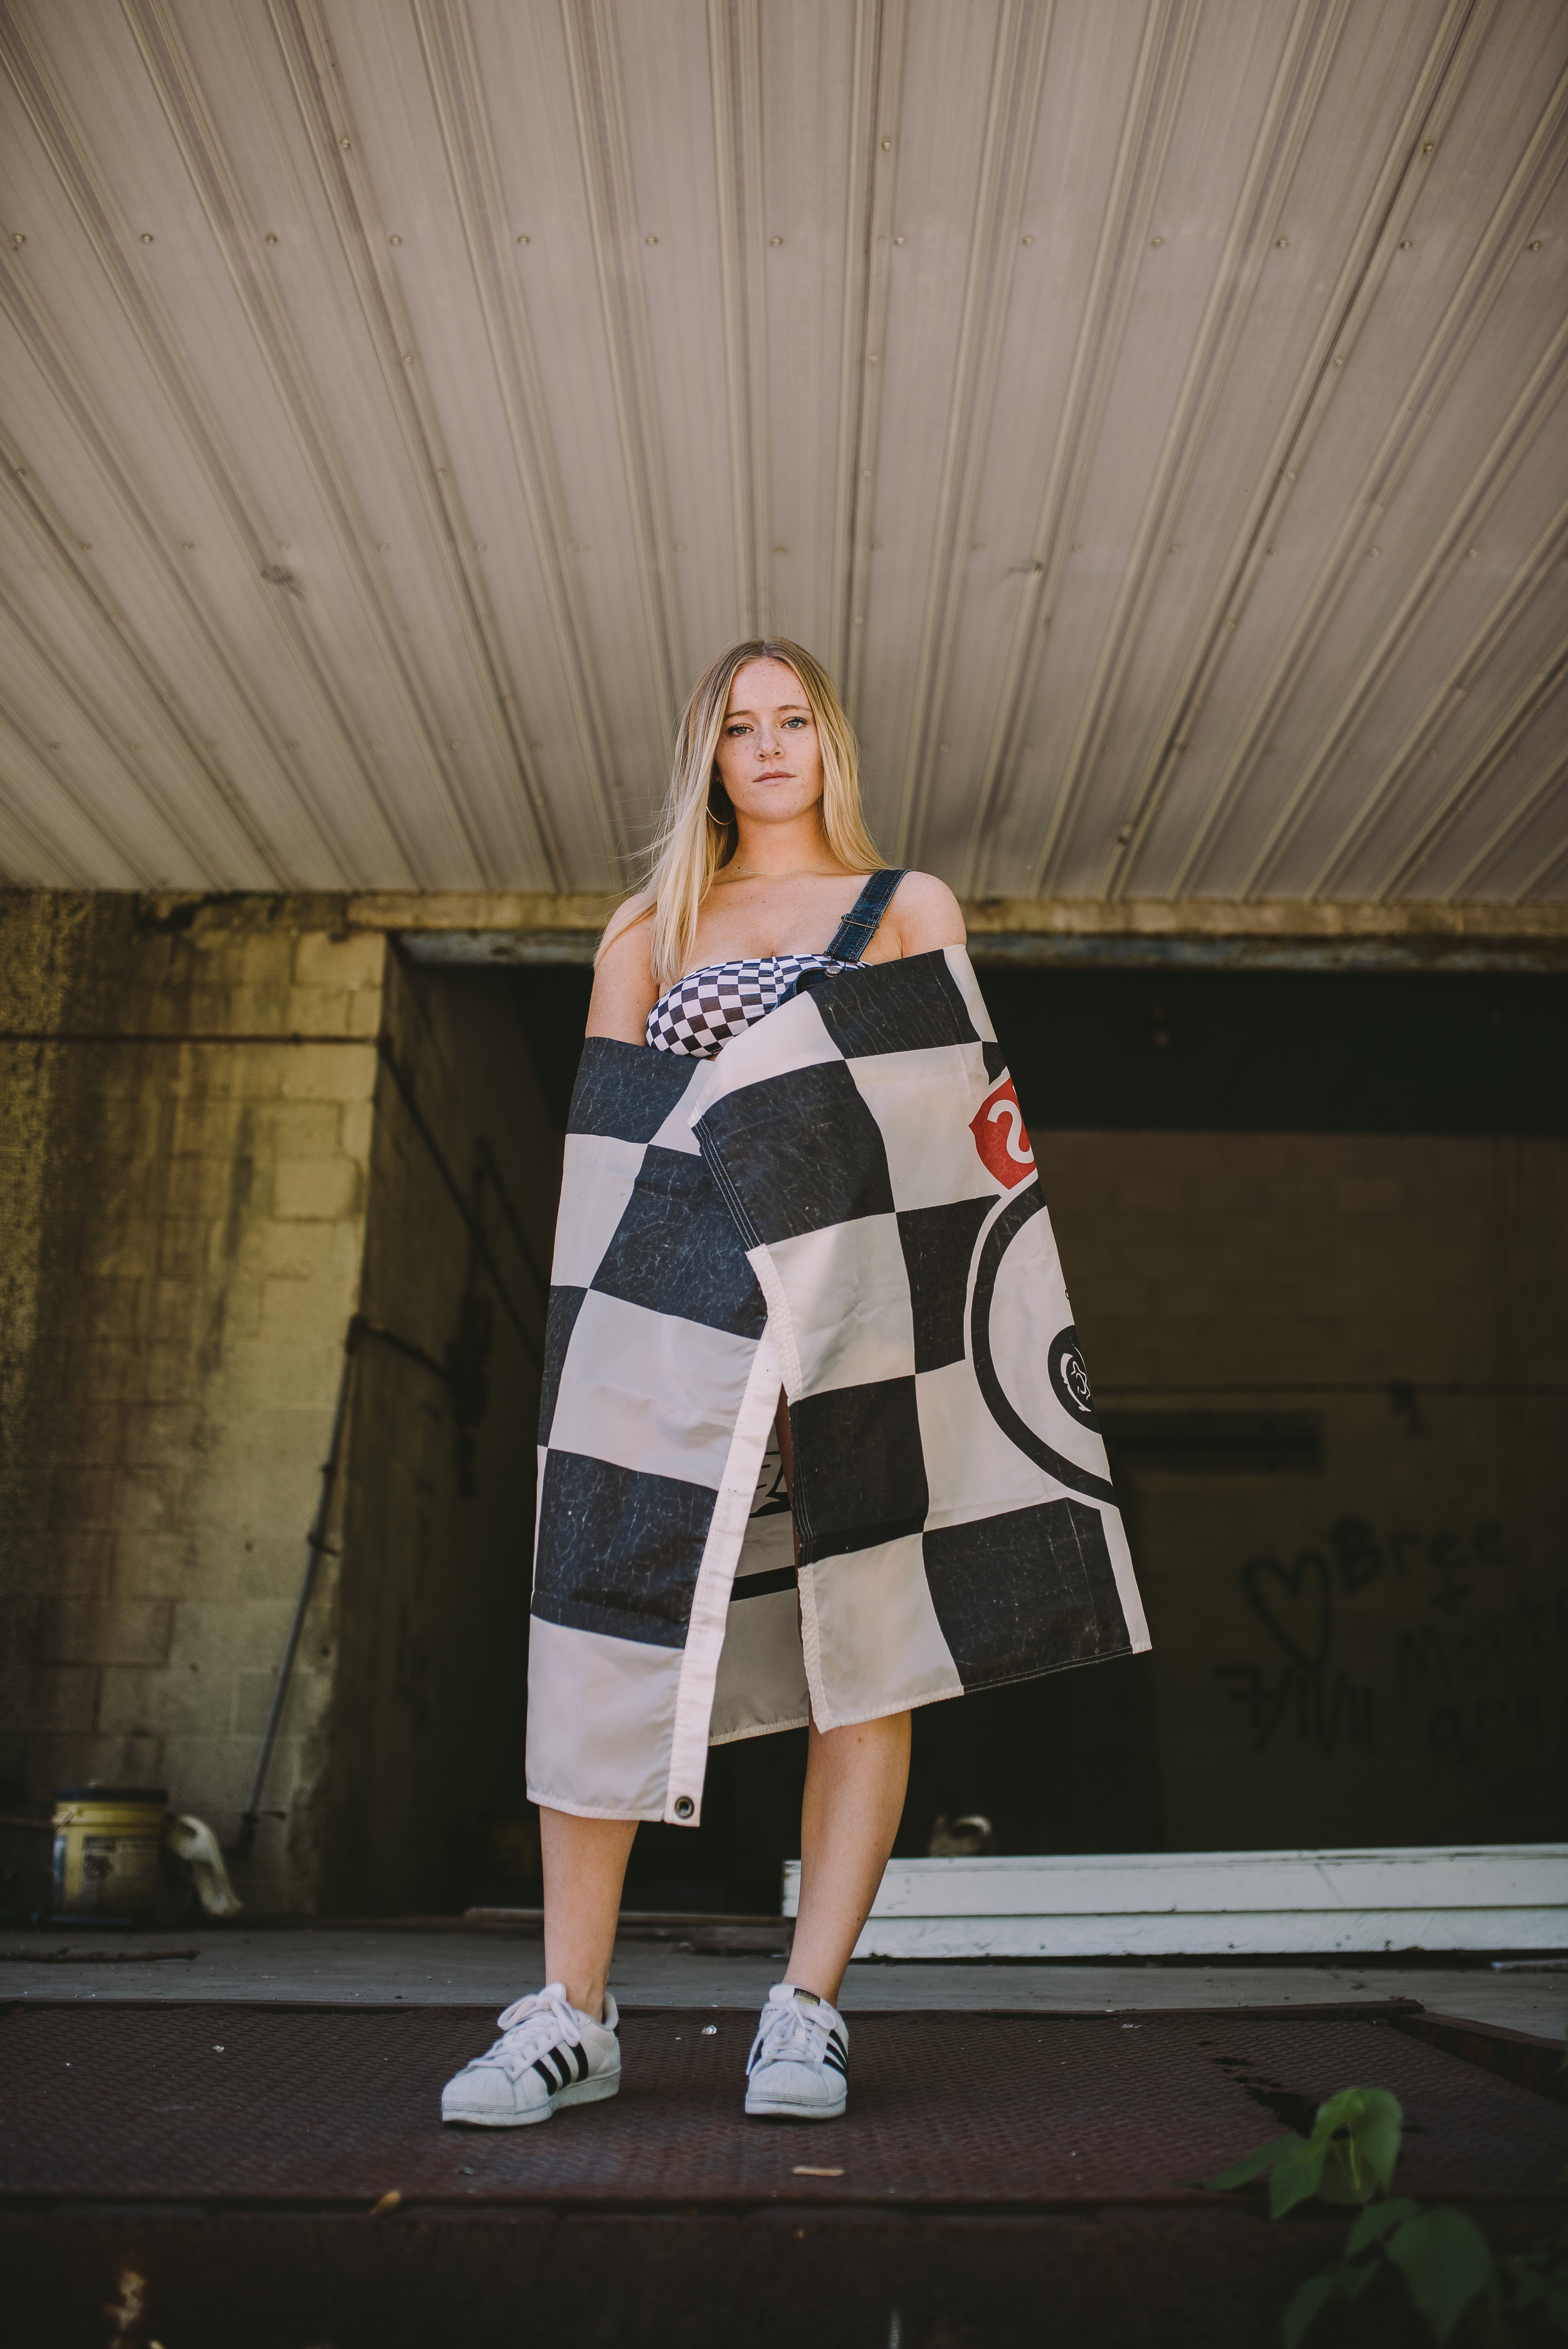 Indy500StyledSession_MuncieIN_May2018_Senior Photography In Phoenix Arizona_ArizonaSeniorPhotographer_SamanthaRosePhotography_FINAL_081.JPG